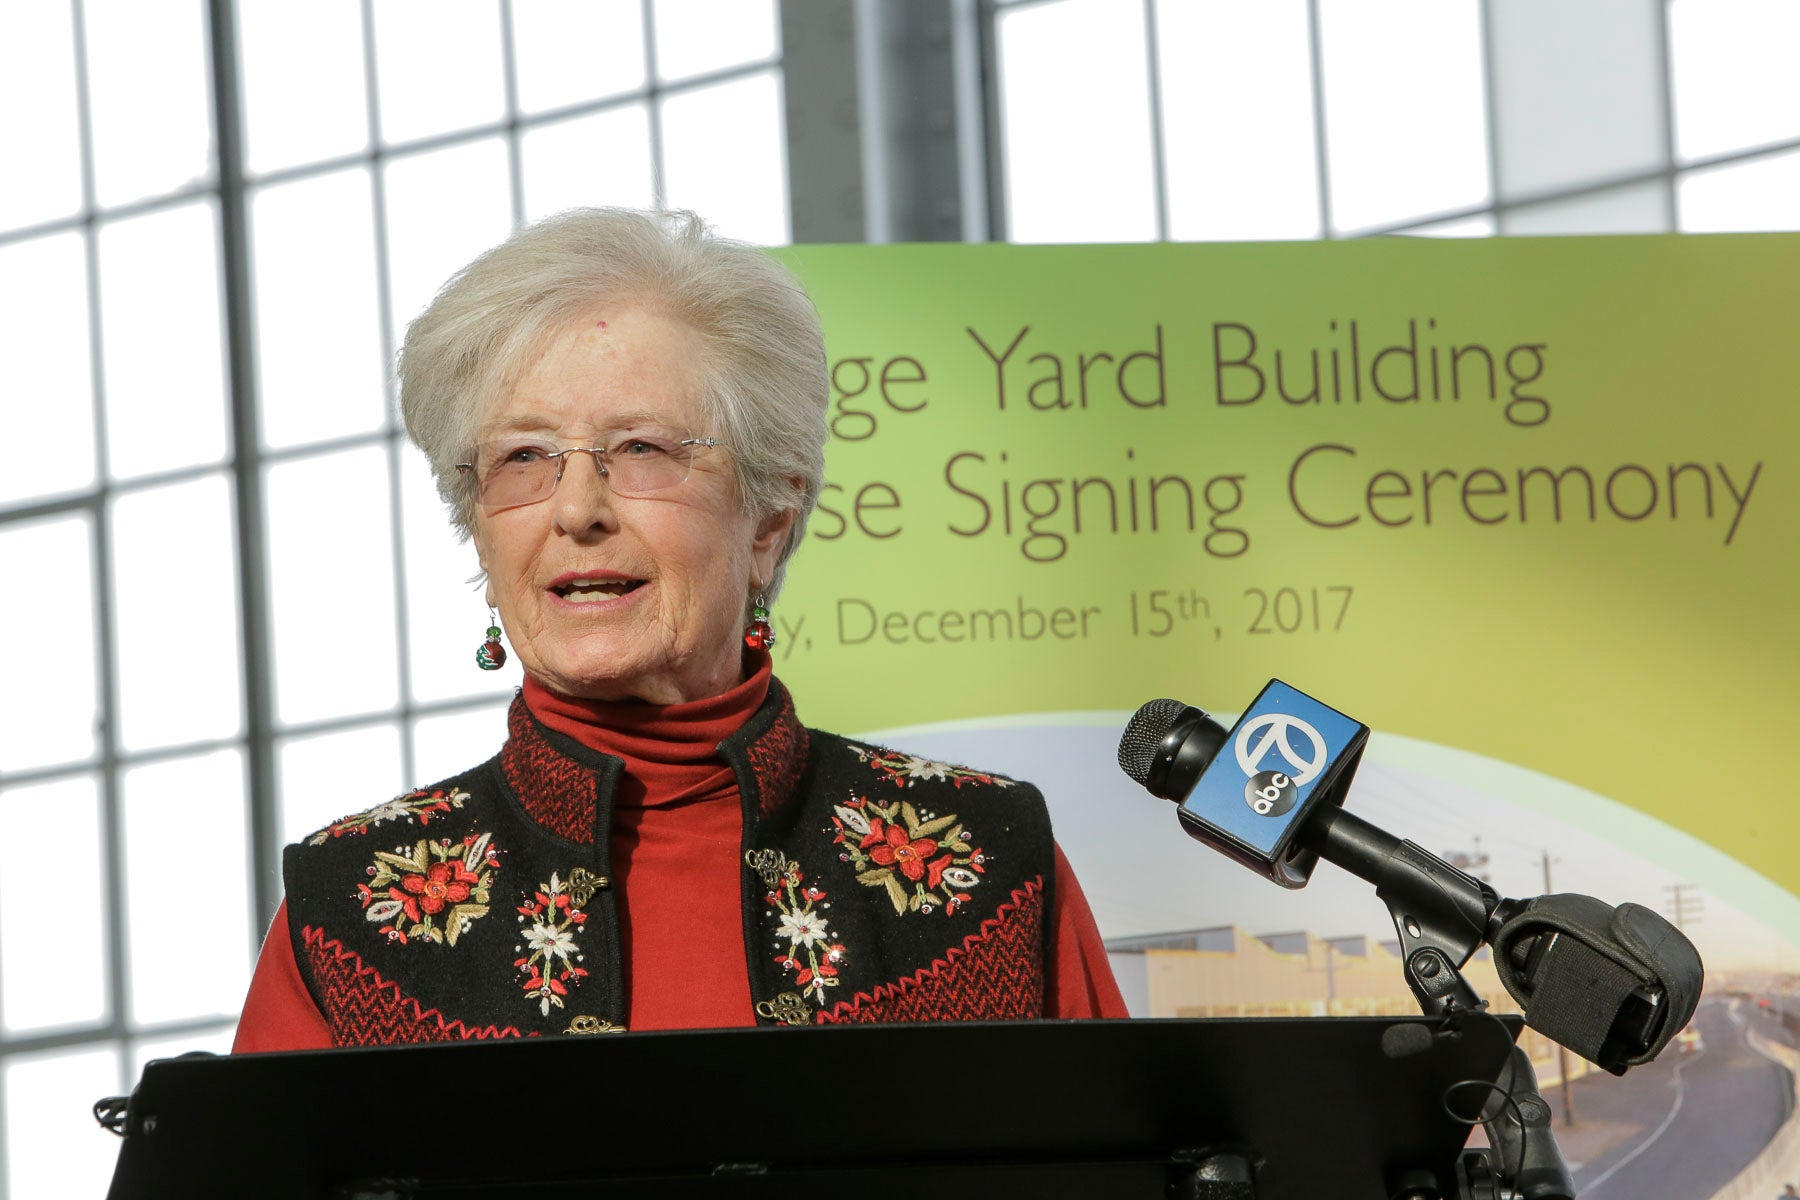 Bridge Yard Building Lease Signing Ceremony